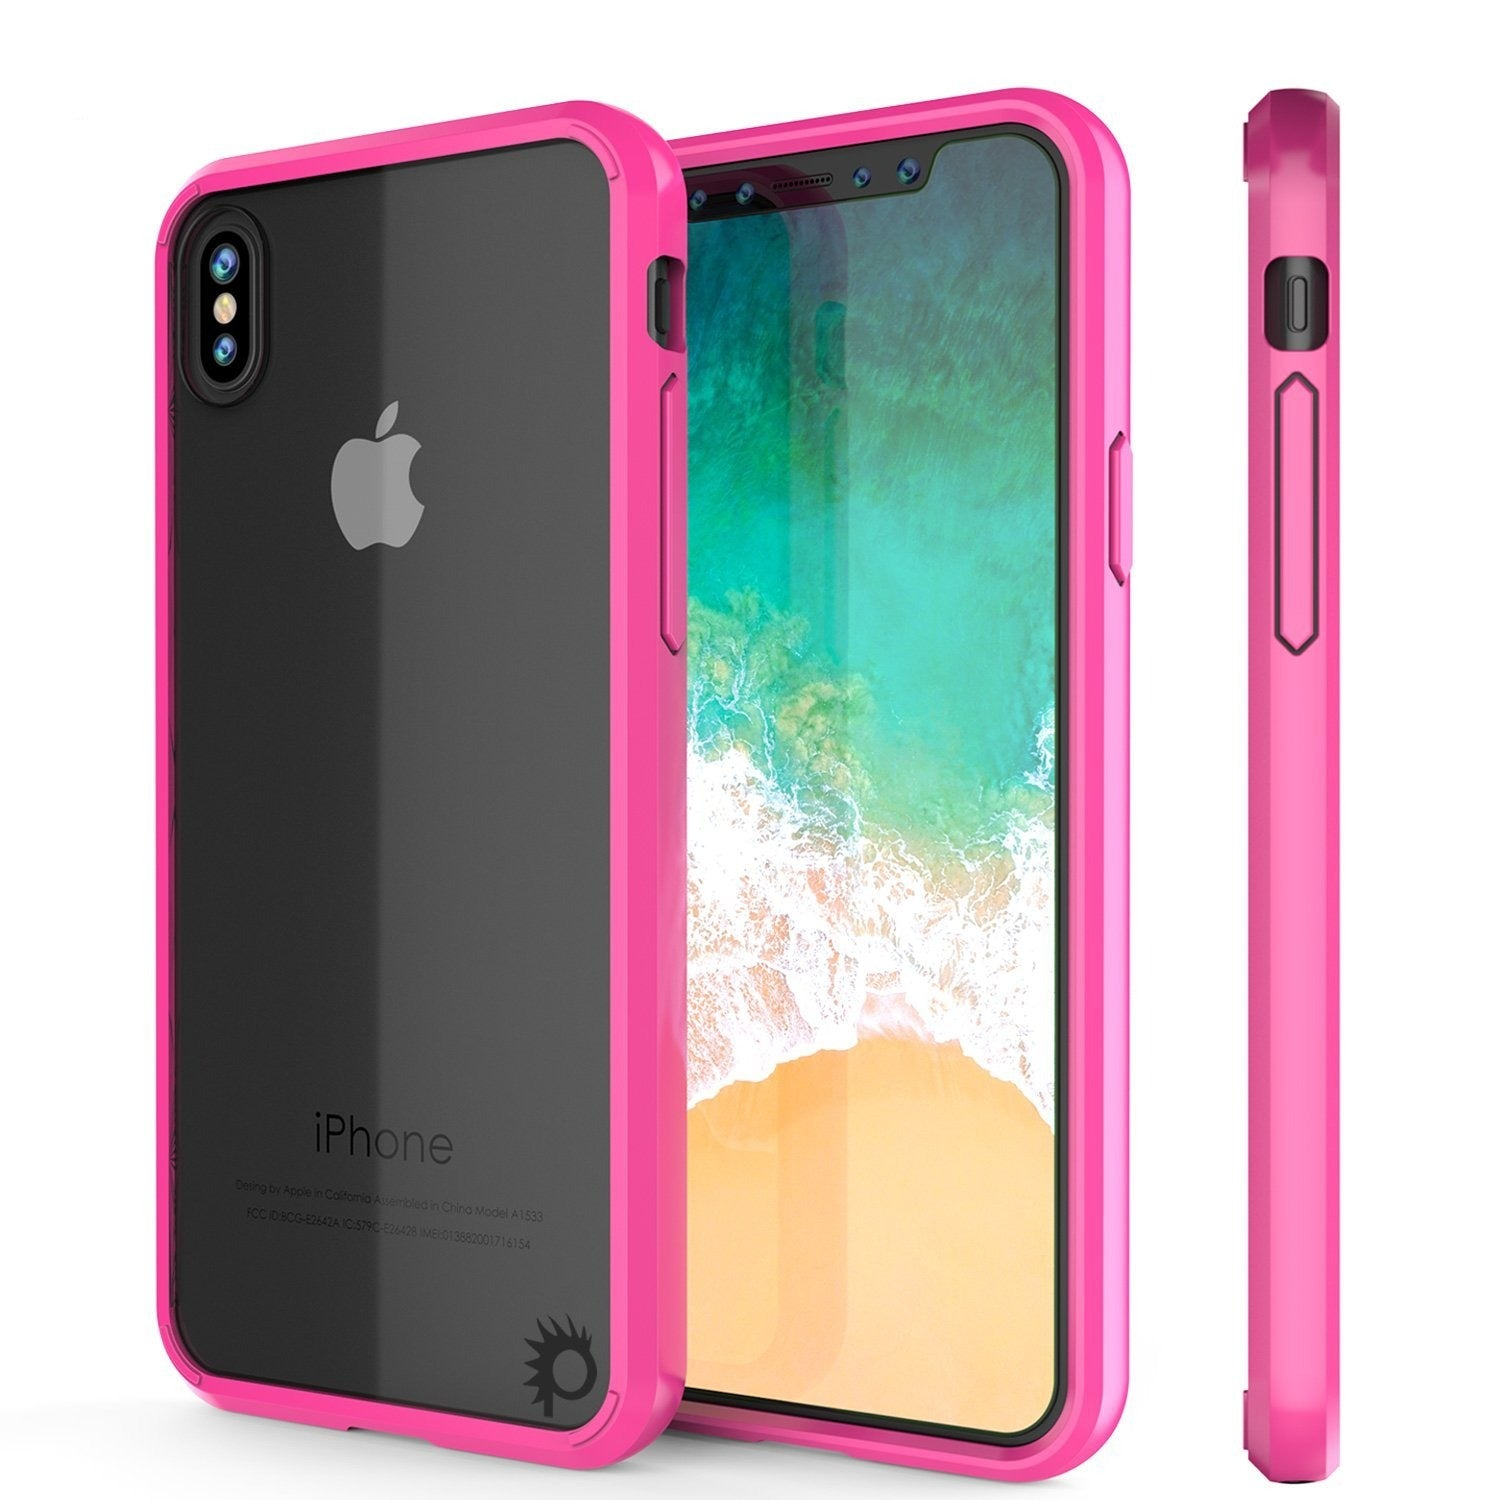 iPhone X Case, PUNKcase [LUCID 2.0 Series] [Slim Fit] Armor Cover W/Integrated Anti-Shock System & Tempered Glass PUNKSHIELD Screen Protector [Pink]